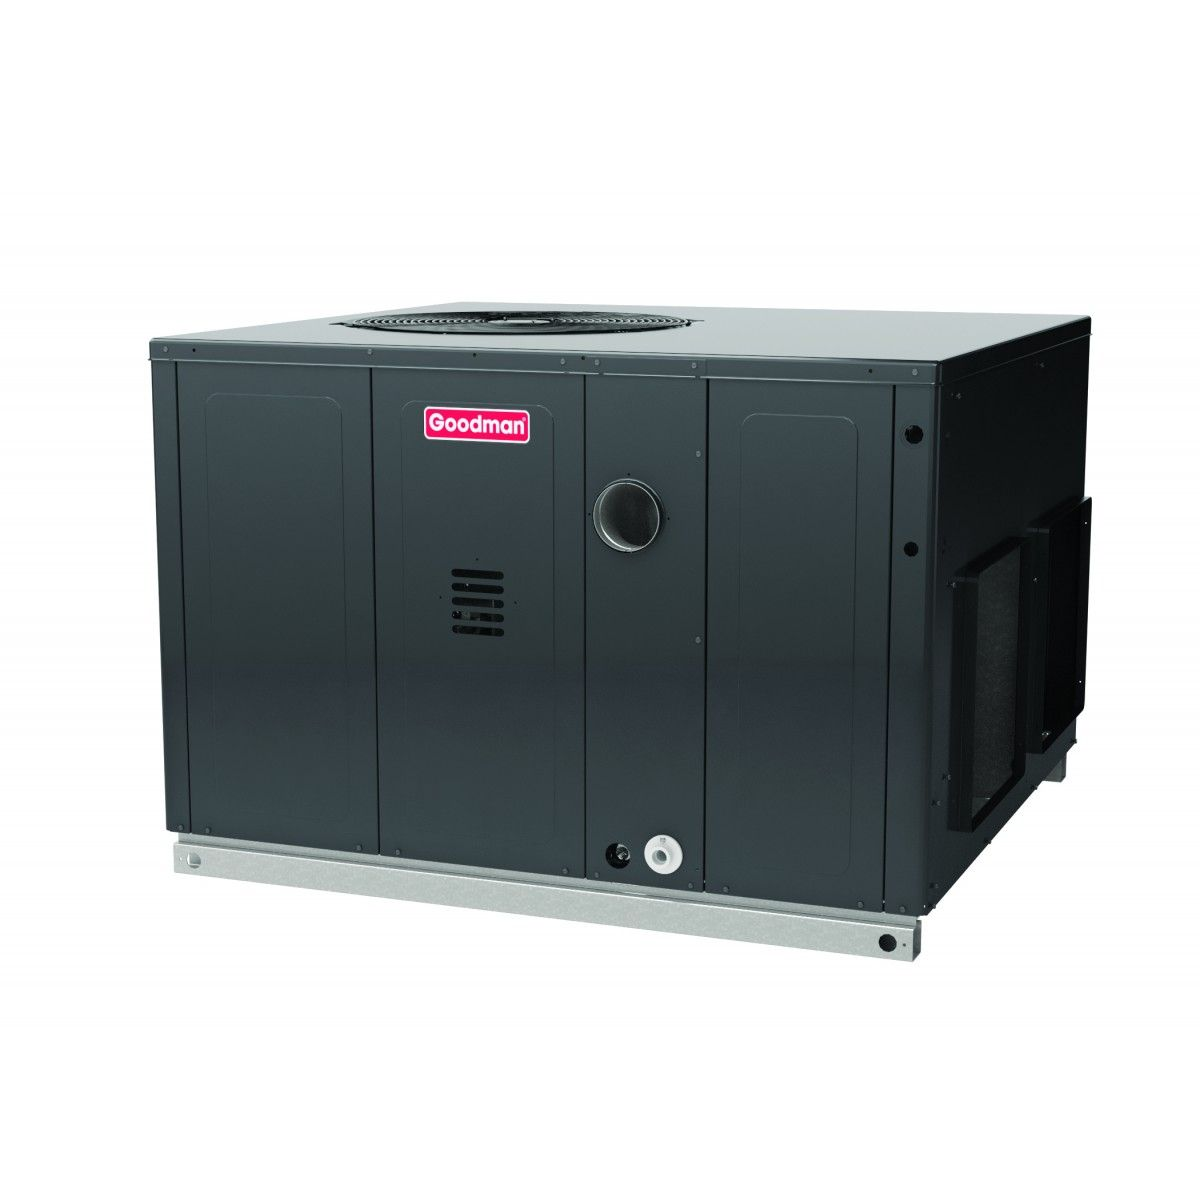 Goodman 4 0 Ton 14 Seer 80k Btu Package Unit With Gas Heat